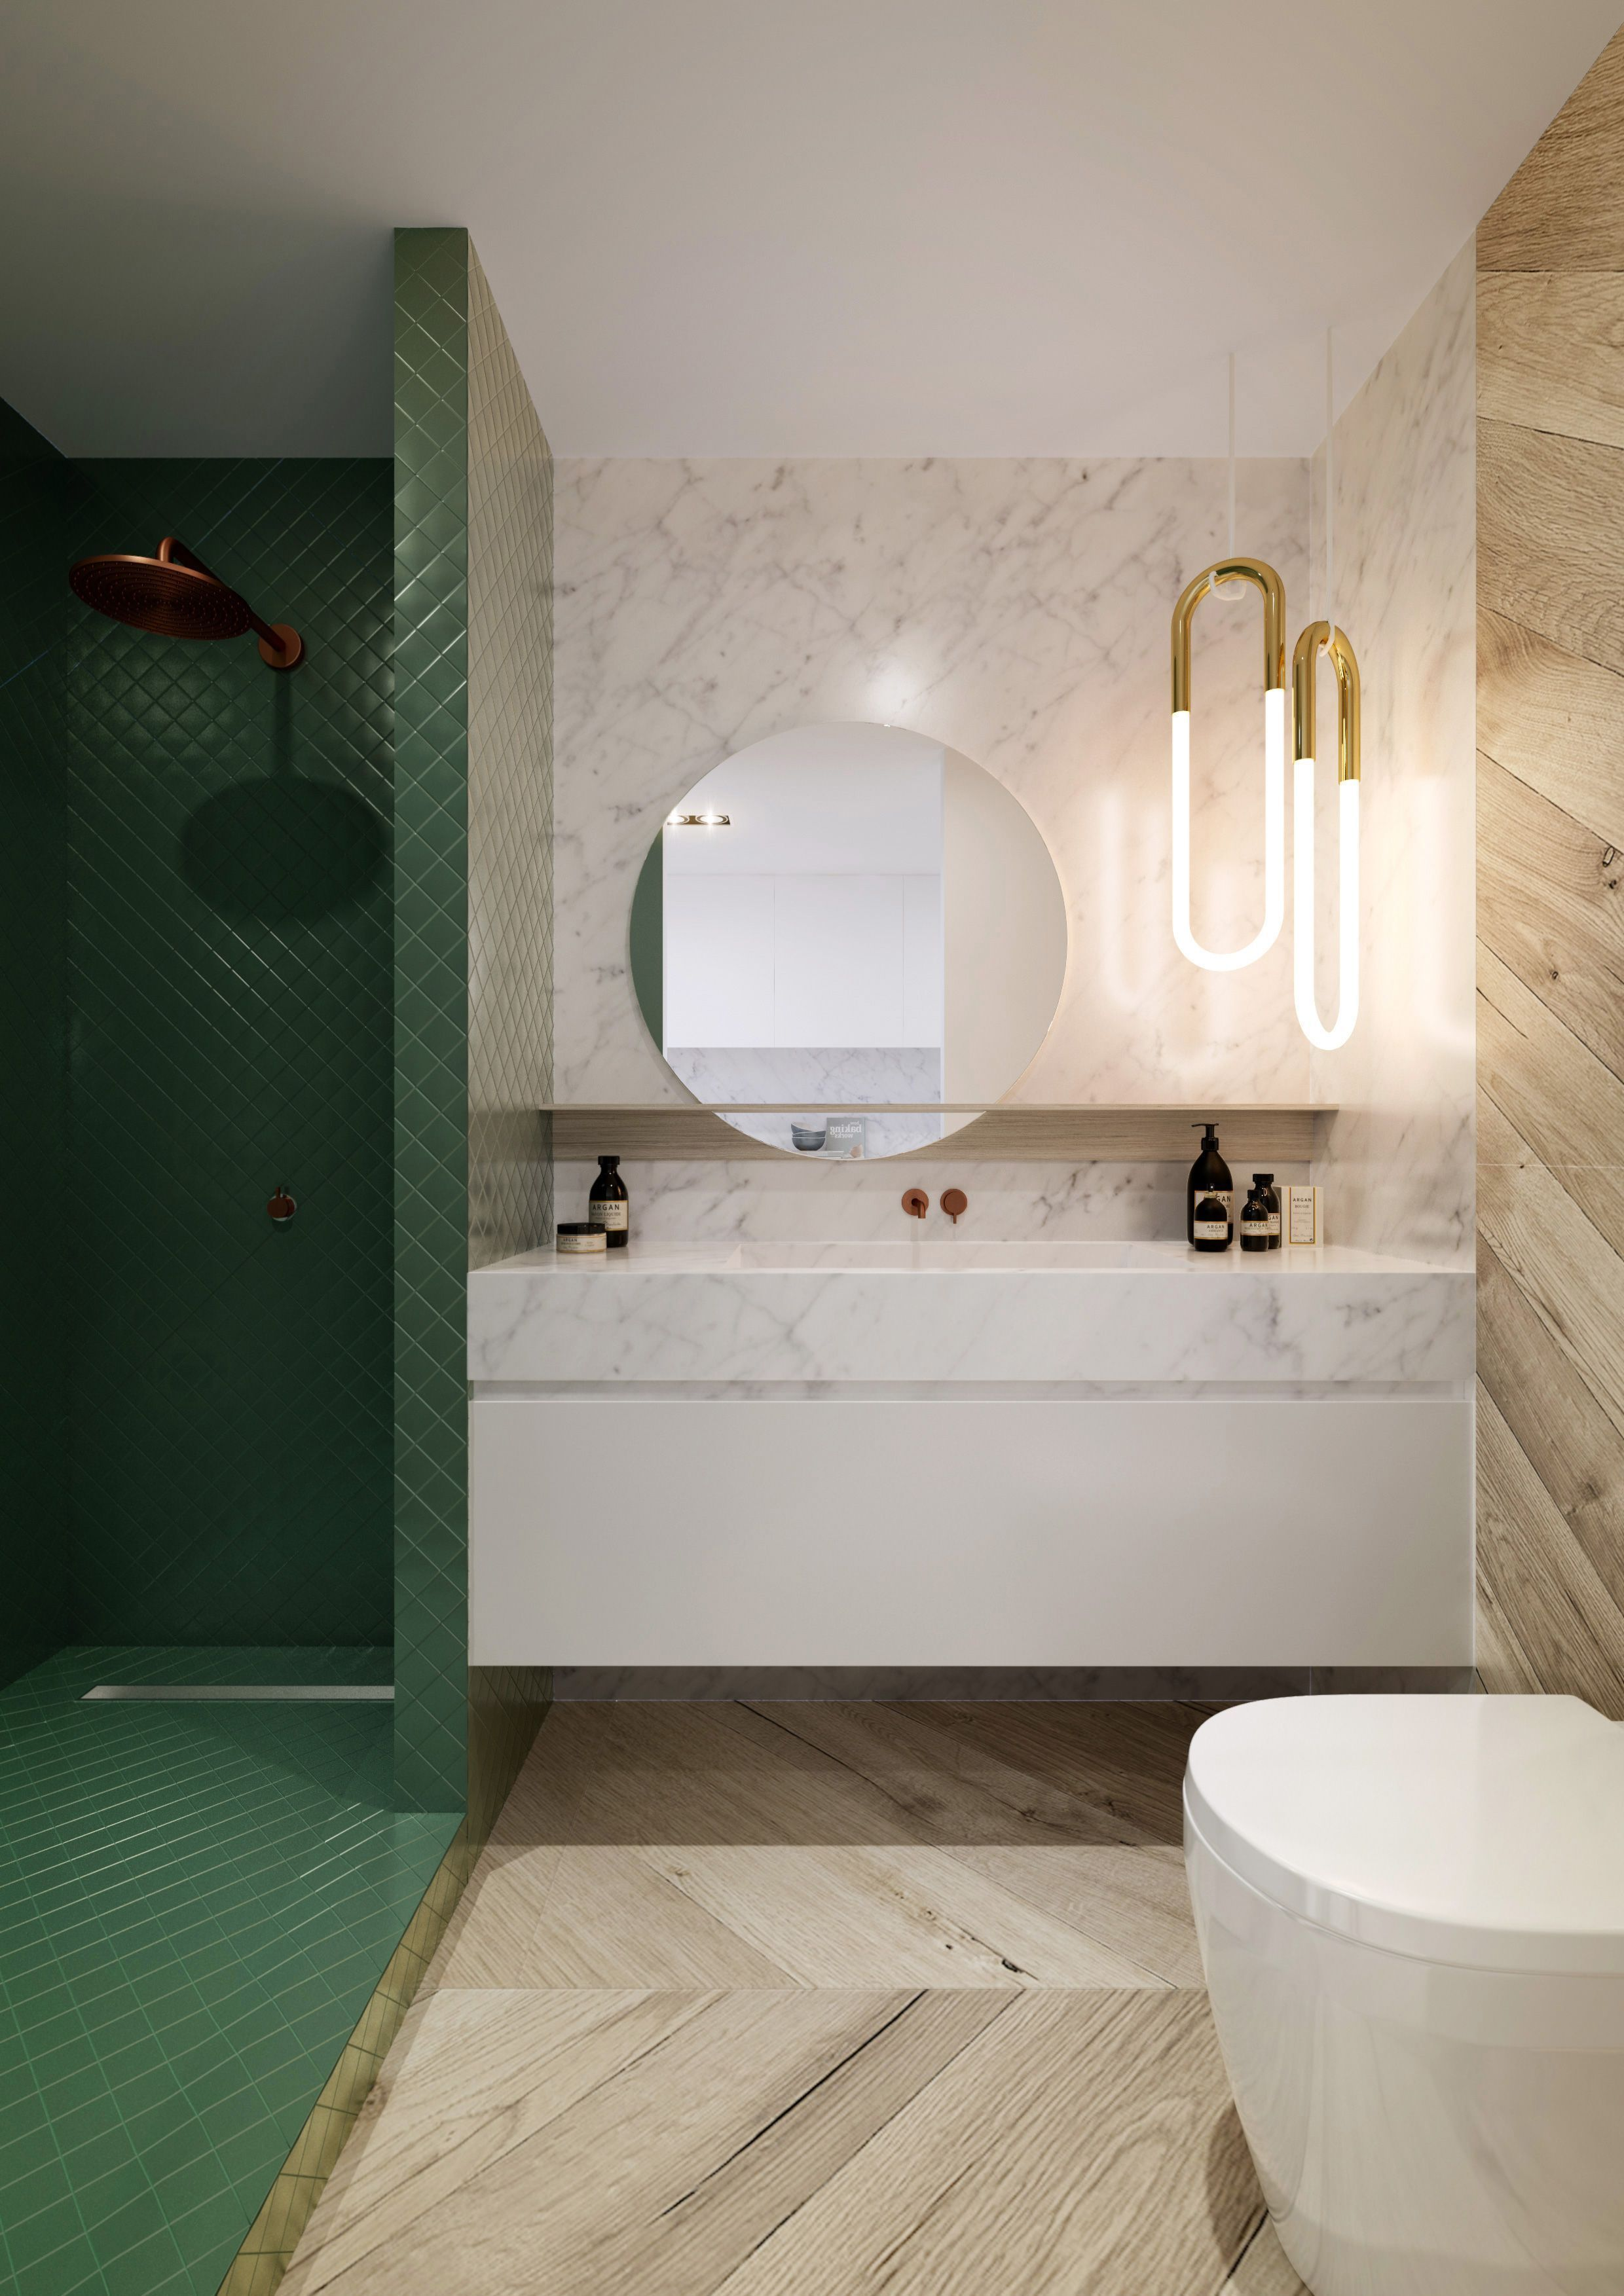 Bathroom Floor Tiles Ideas Bathroom tiles are an easy way to update your bathroom without pletely renovating the whole room A new bathroom tile design